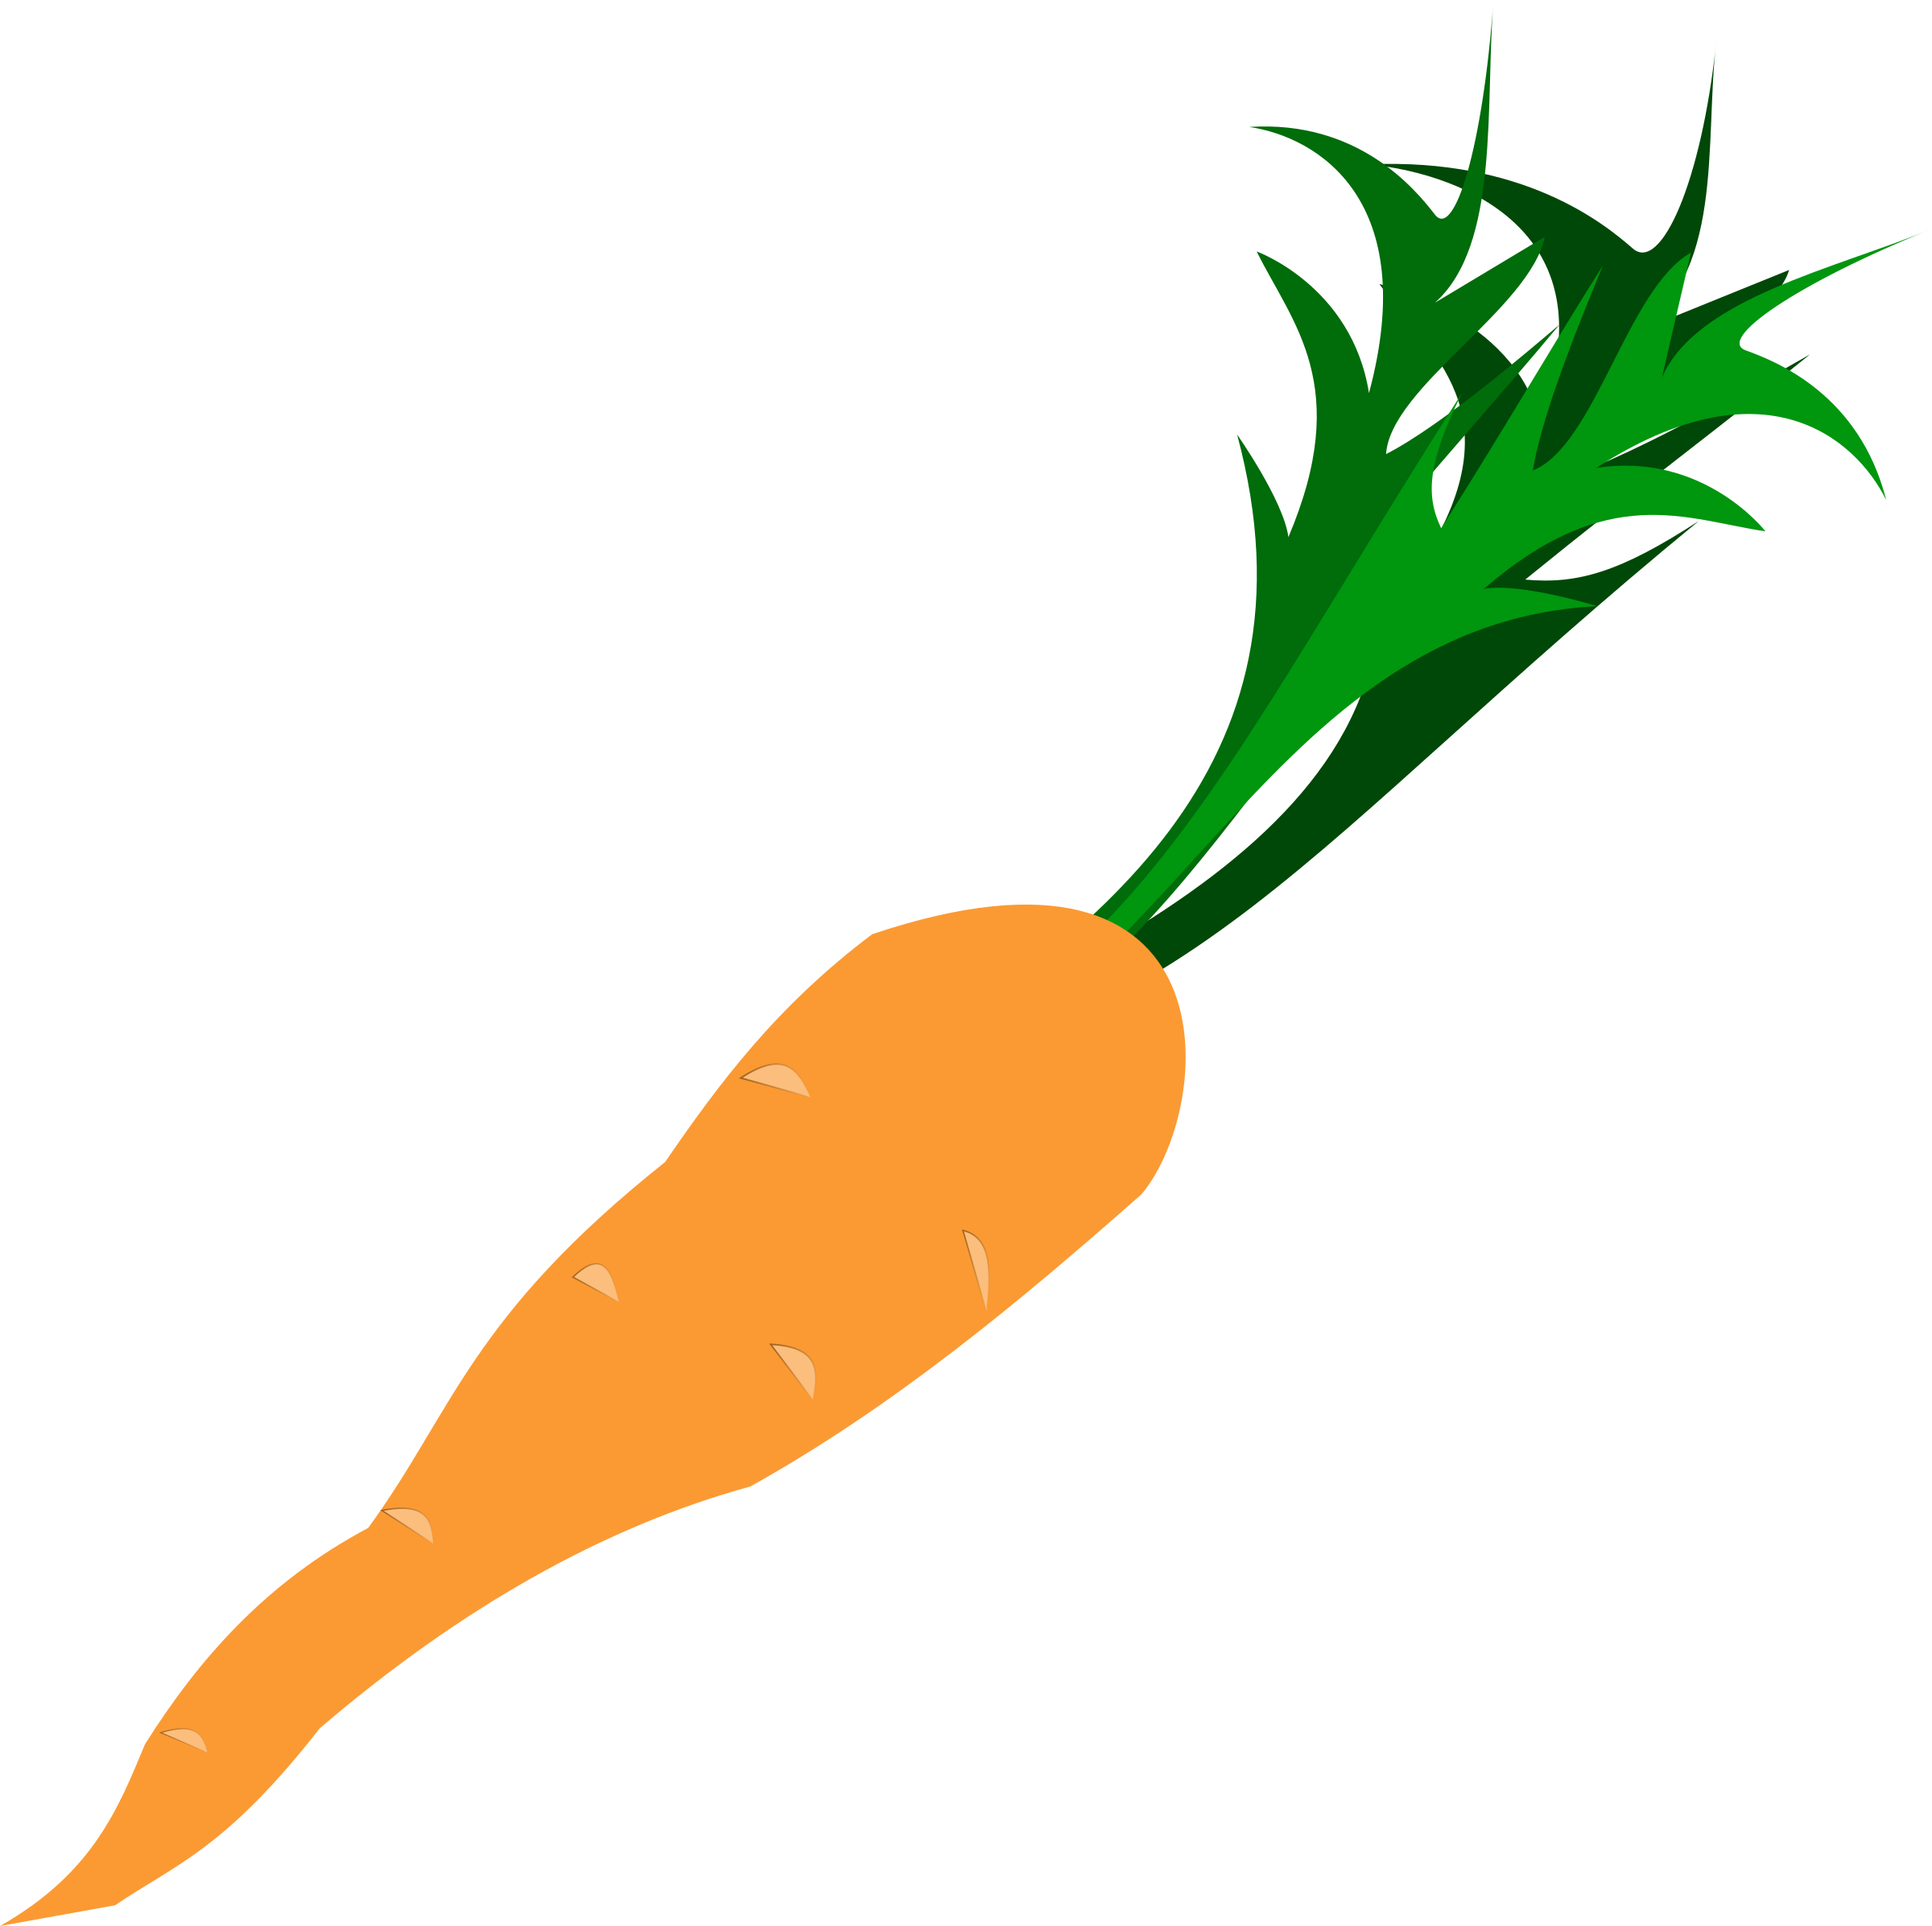 svg freeuse download Clipart leafy vegetable top. Vector carrot bunch